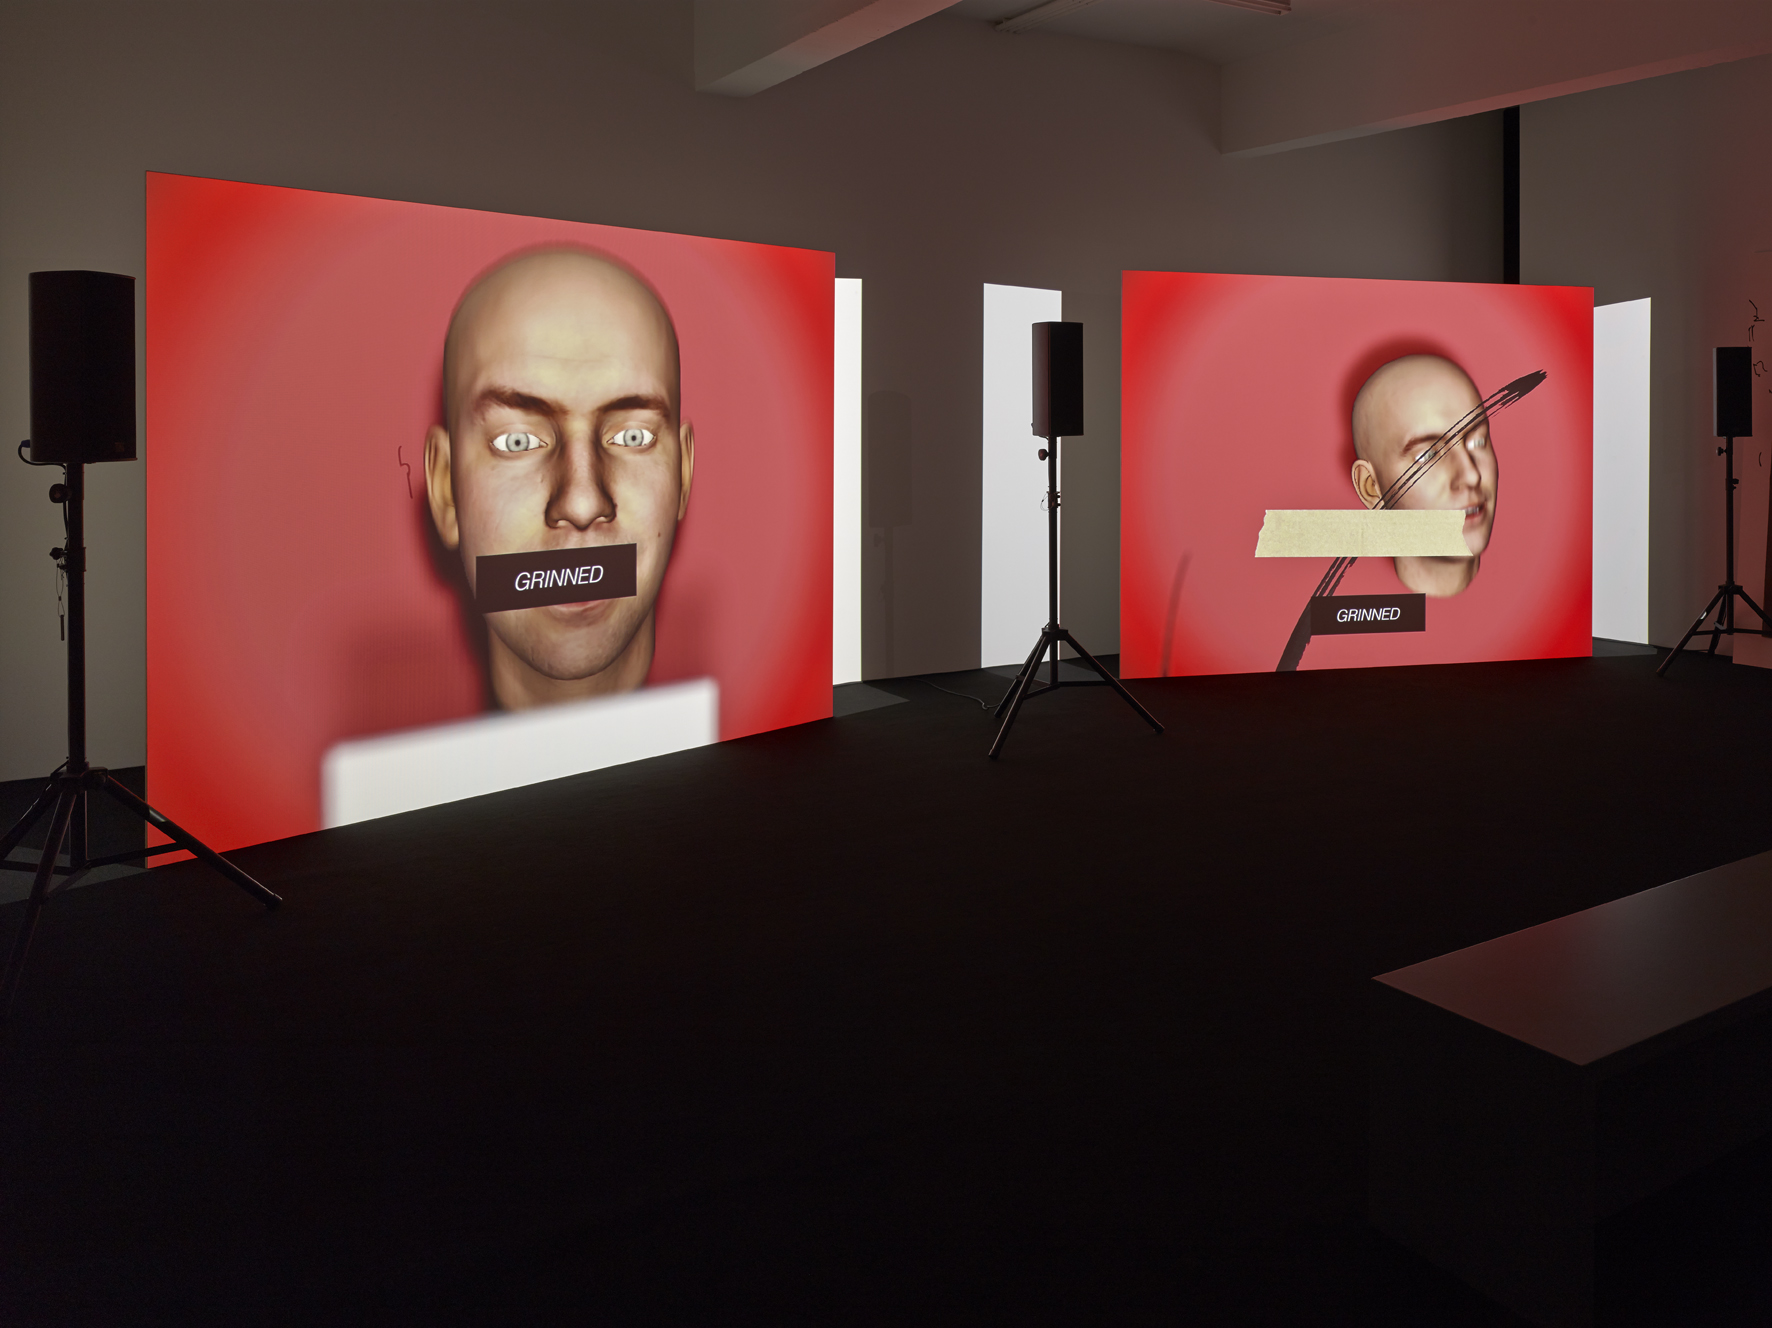 Image: Ed Atkins, Us Dead Talk Love, 2012. Two-channel video installation, 37'24'', colour, sound. Courtesy the Artist and Cabinet London.